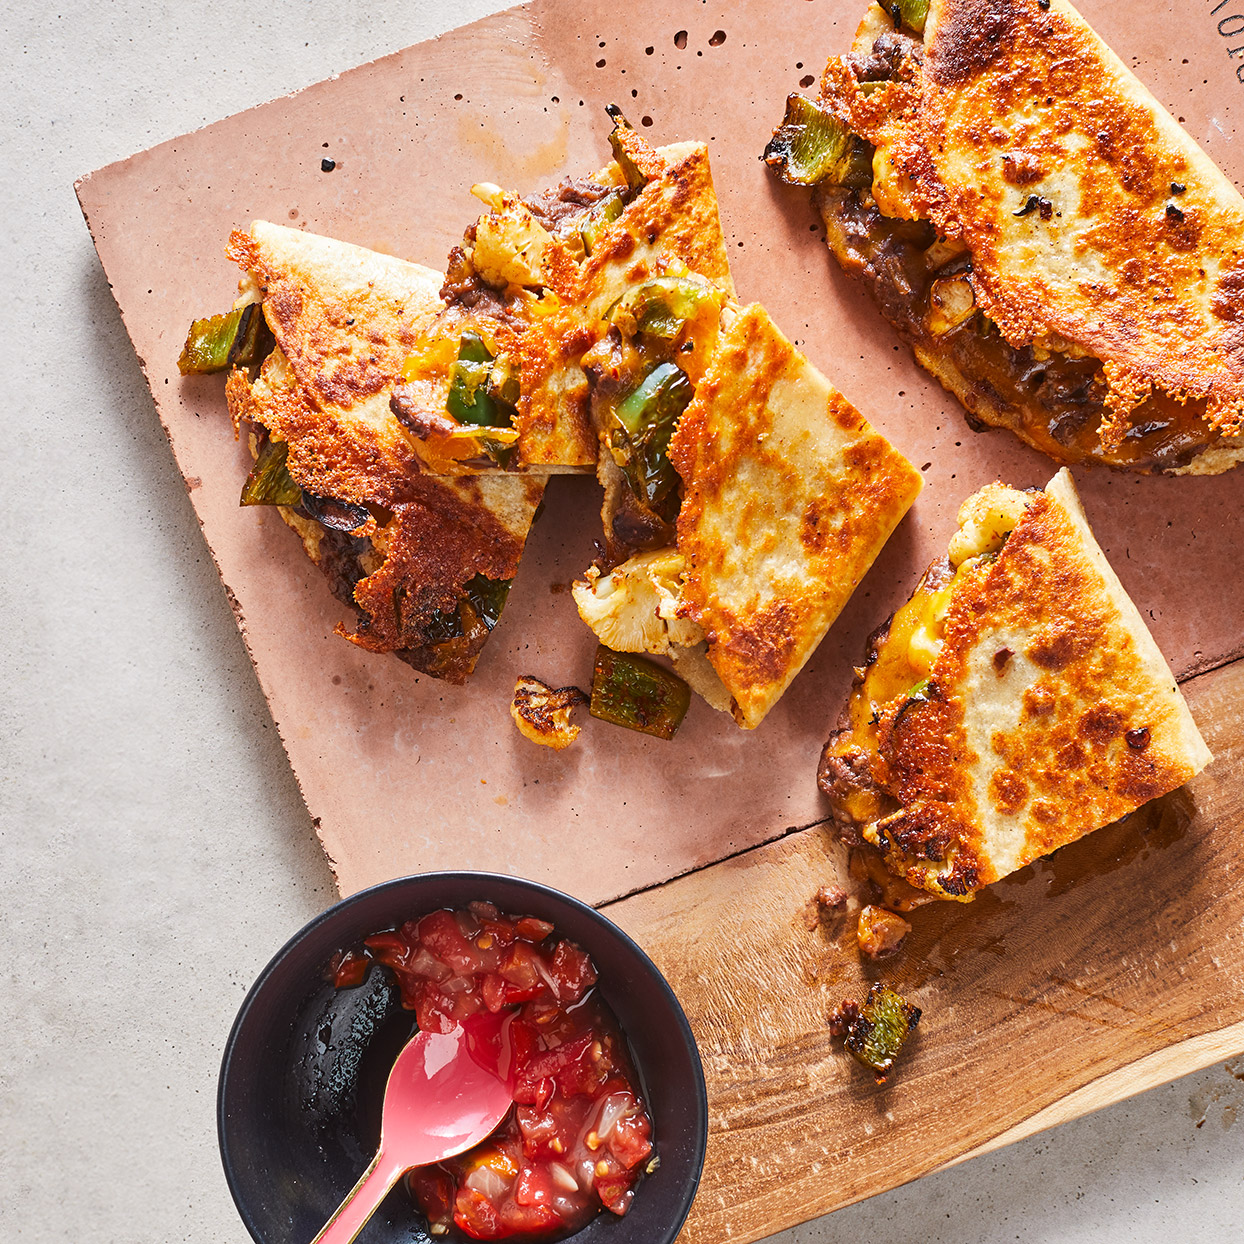 Poblano peppers add a touch of heat to these vegetarian quesadillas, but a sweet bell pepper is tasty, too, if you want something milder. Start these quesadillas in the oven and finish them off in a skillet for melty cheese and crispy tortillas.